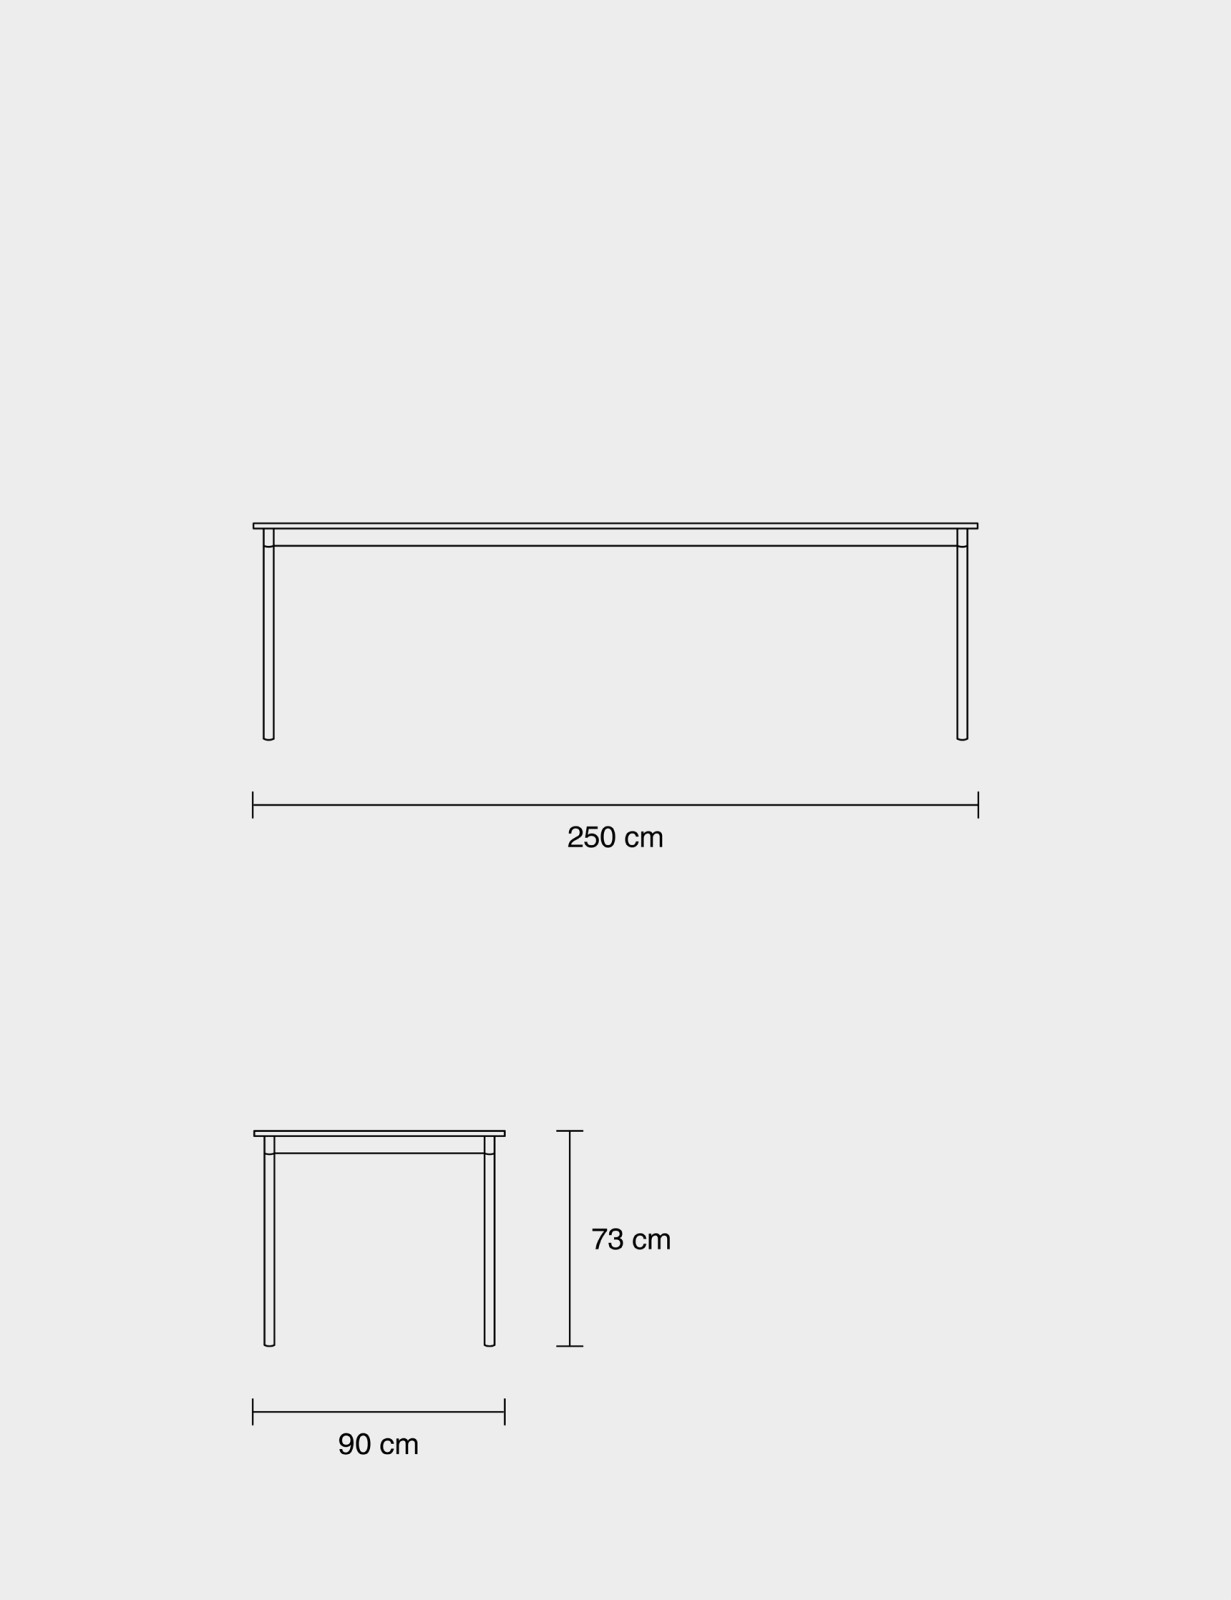 Base Rectangular Table 190 x 85, White/Black Linoleum/Plywood